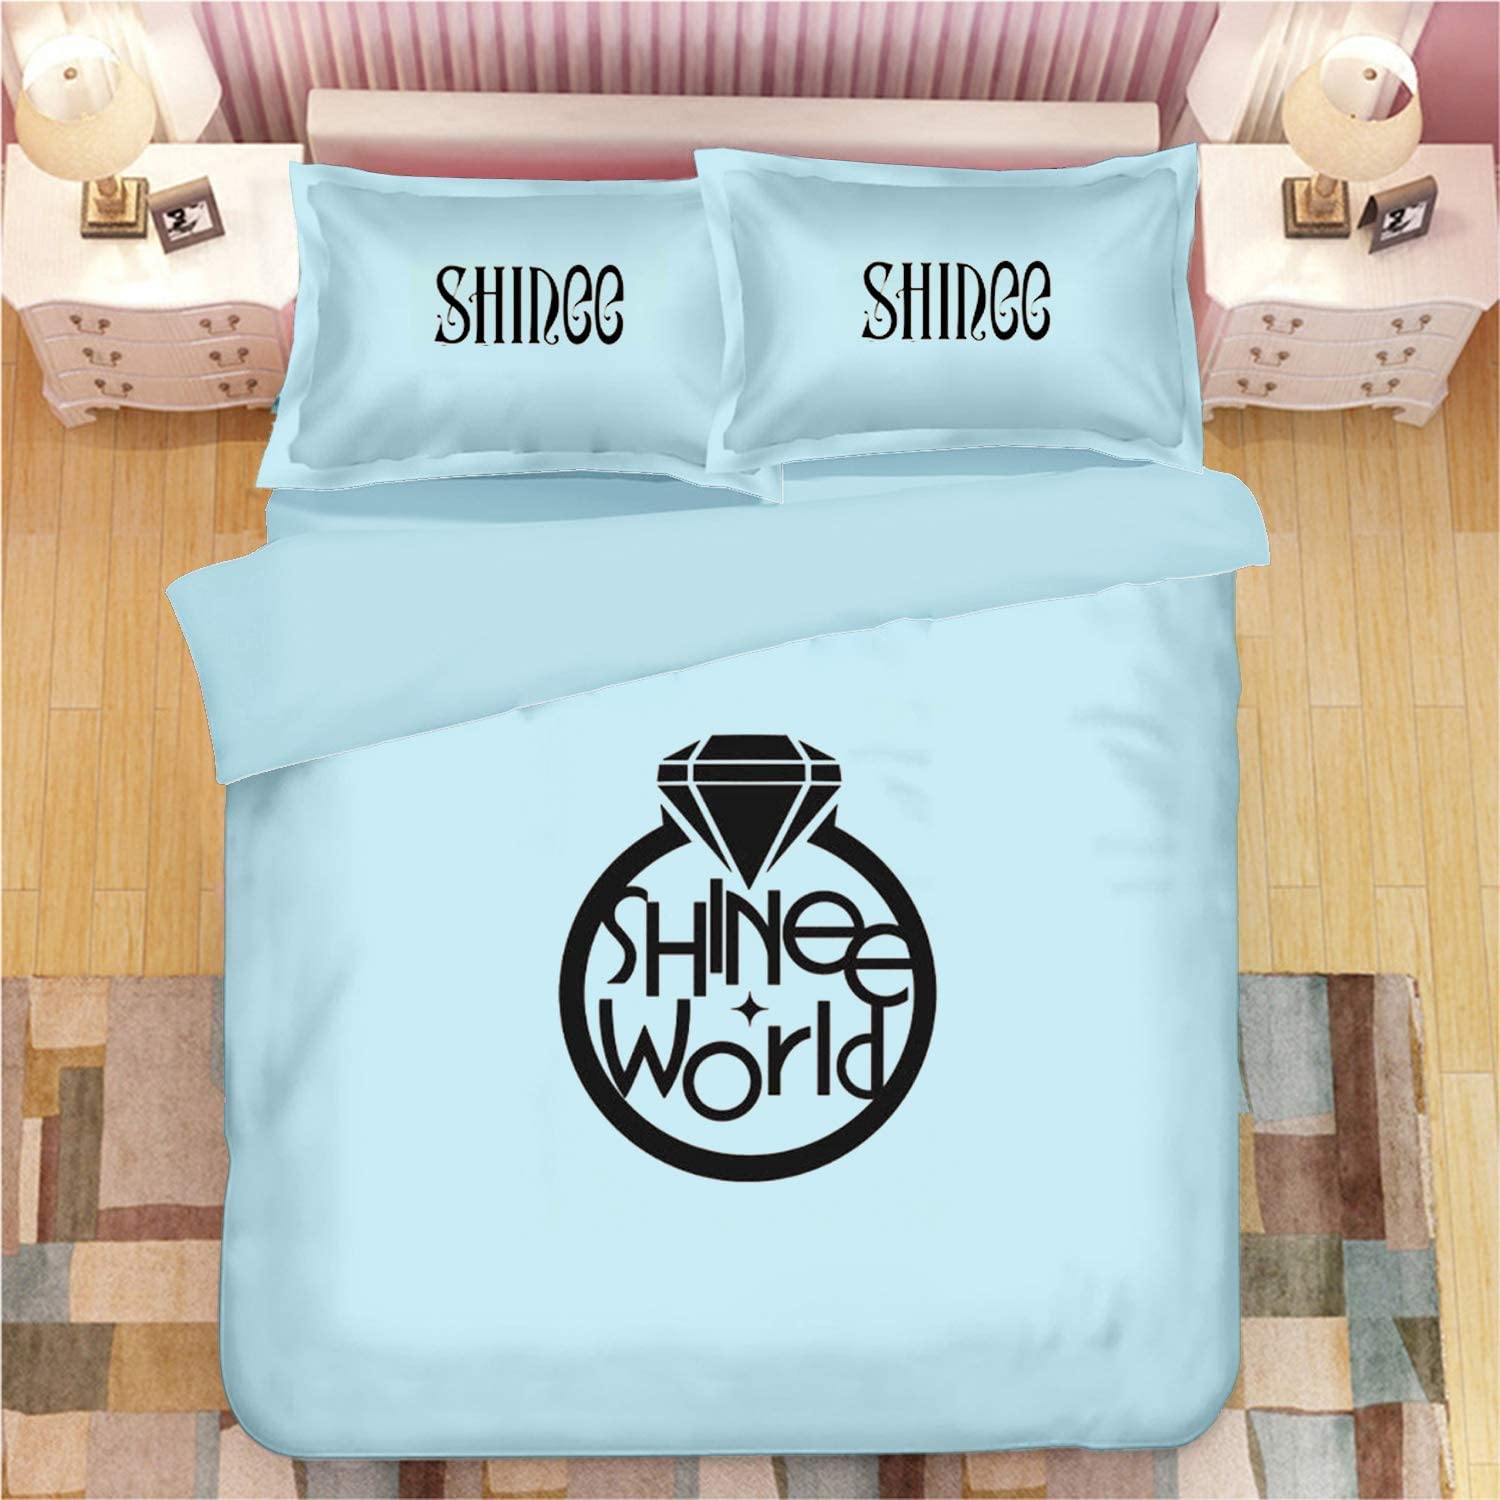 Dolpind Kpop BTS Blackpink NCT 127 SuperM TXT Astro GOT7 IKON Monsta X ATEEZ Sheets Bedding Set Cotton 3Pcs for Quilt Cover Pillow Case